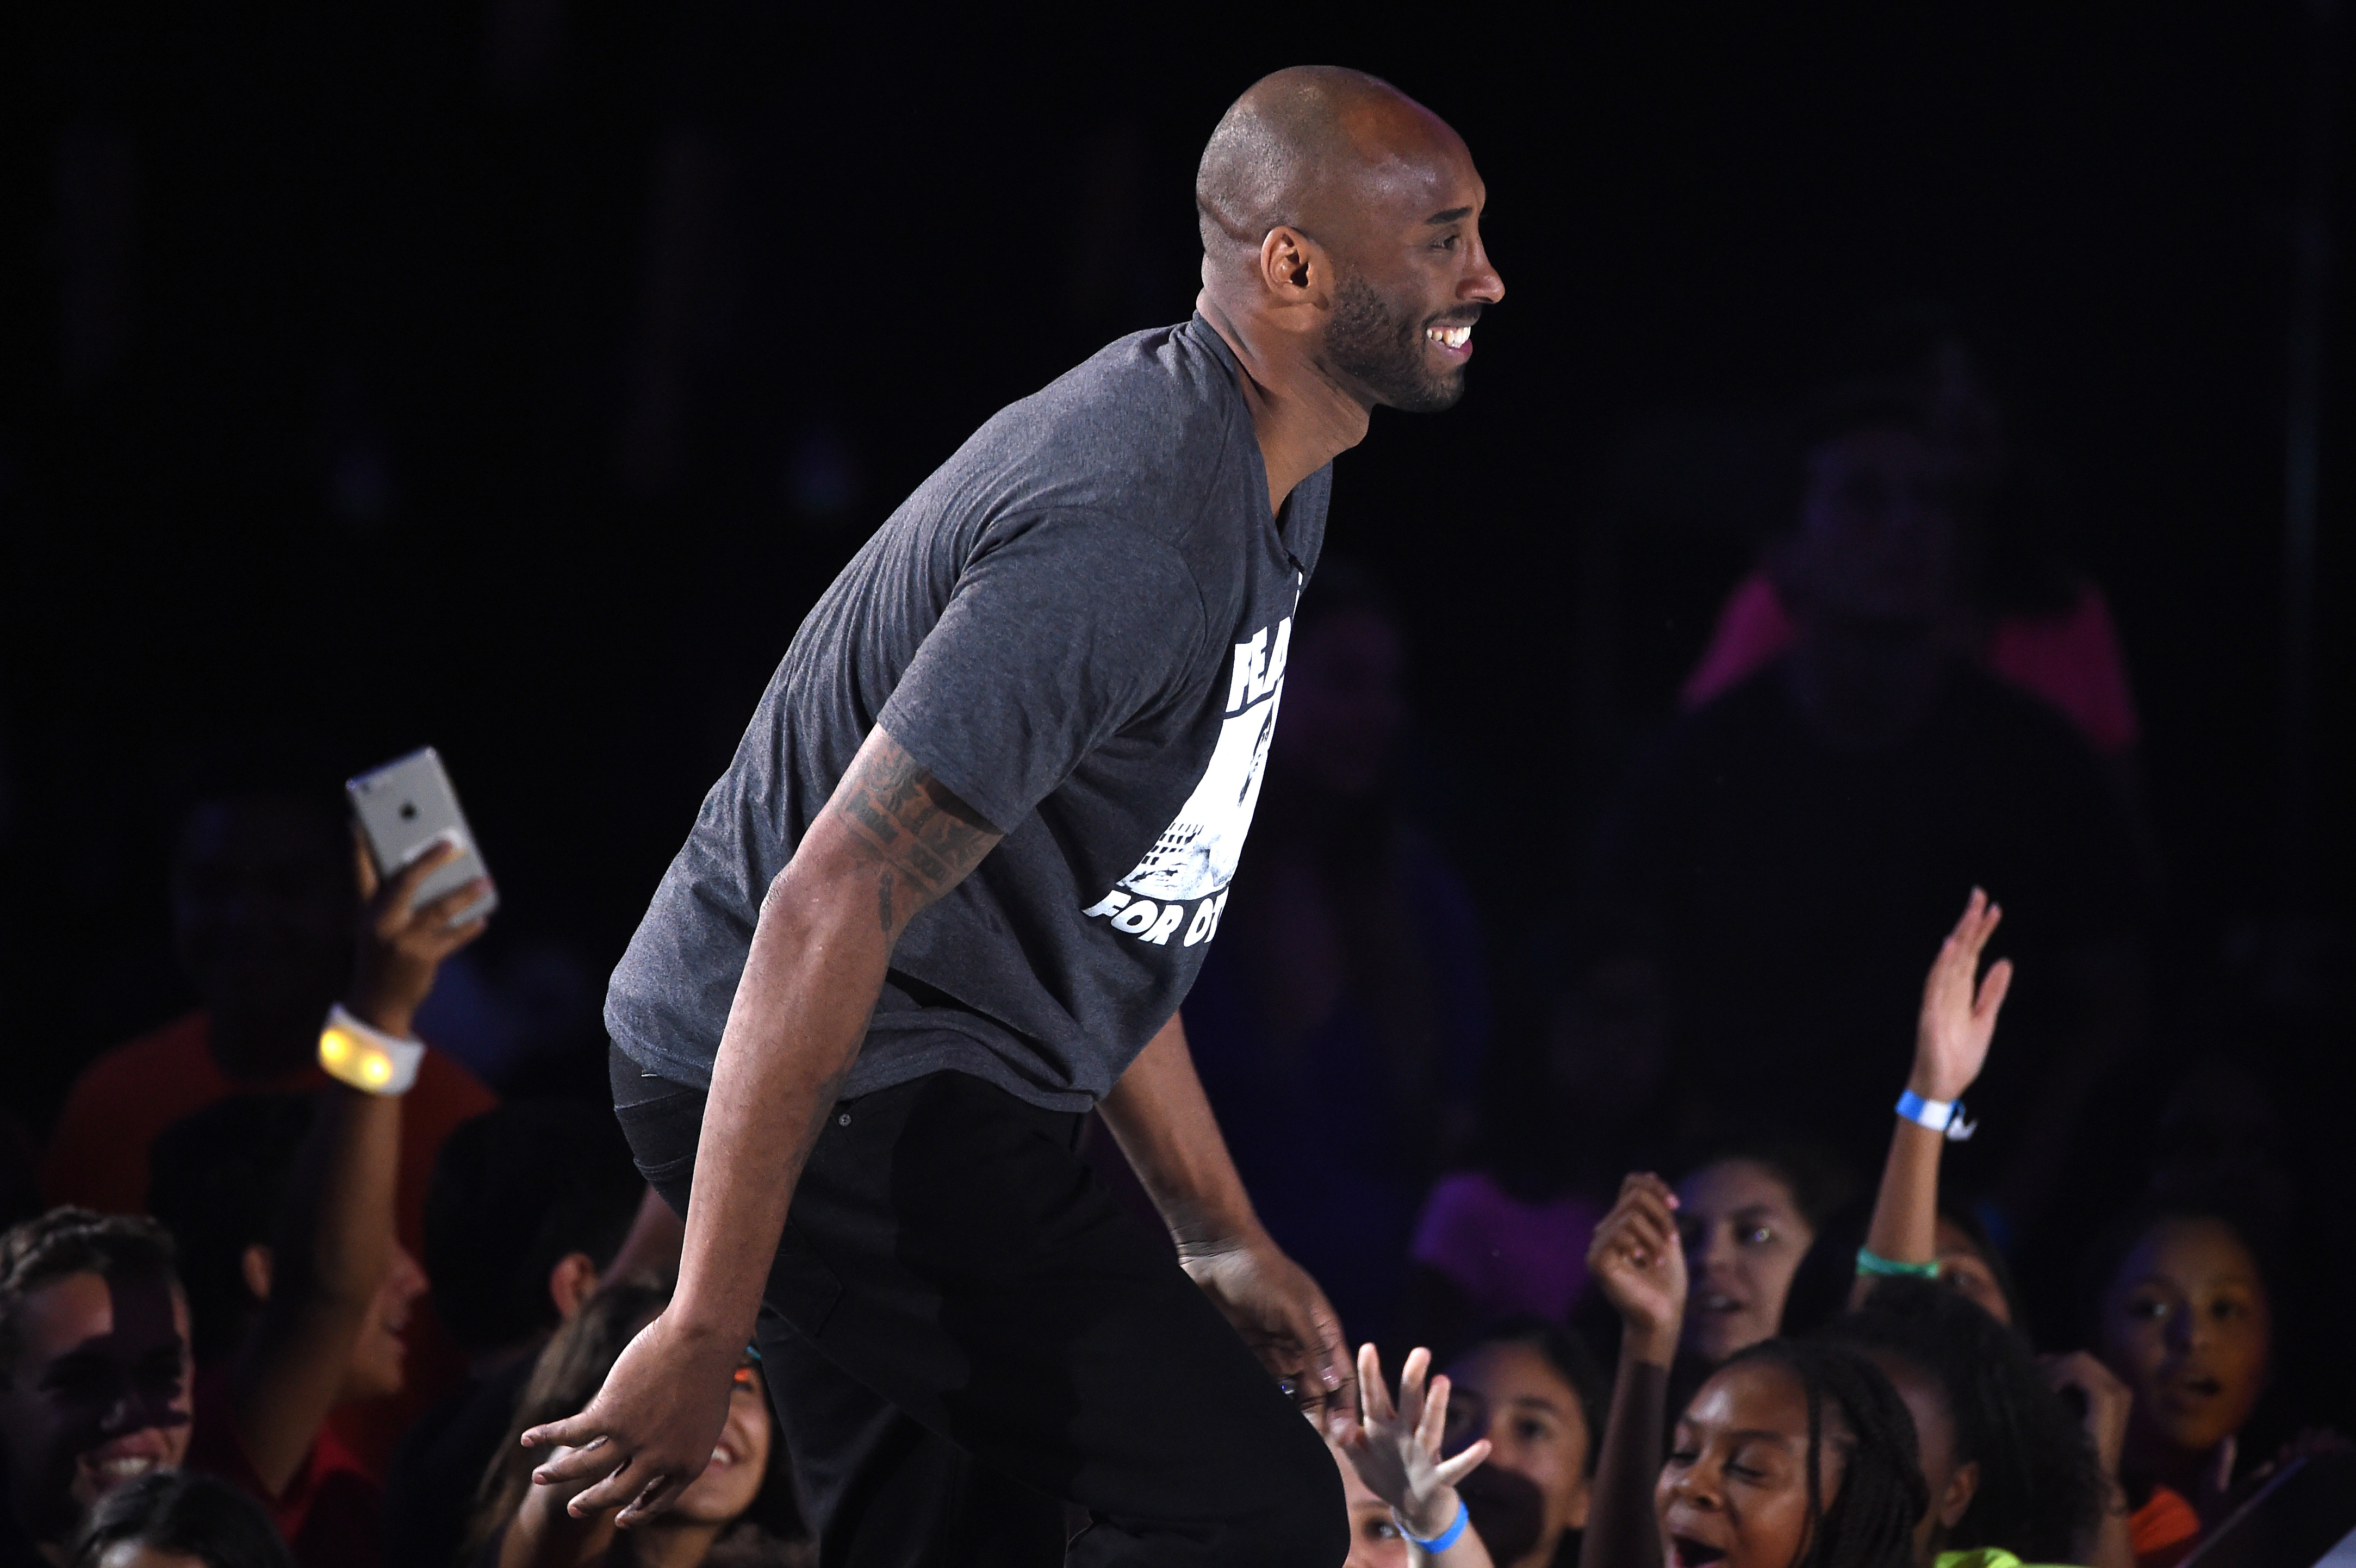 WESTWOOD, CA - JULY 14:  Honoree Kobe Bryant greets fans during the Nickelodeon Kids' Choice Sports Awards 2016 at UCLA's Pauley Pavilion on July 14, 2016 in Westwood, California. The Nickelodeon Kids' Choice Sports Awards 2016 show airs on July 17, 2016 at 8pm on Nickelodeon.  (Photo by Kevin Winter/Getty Images)